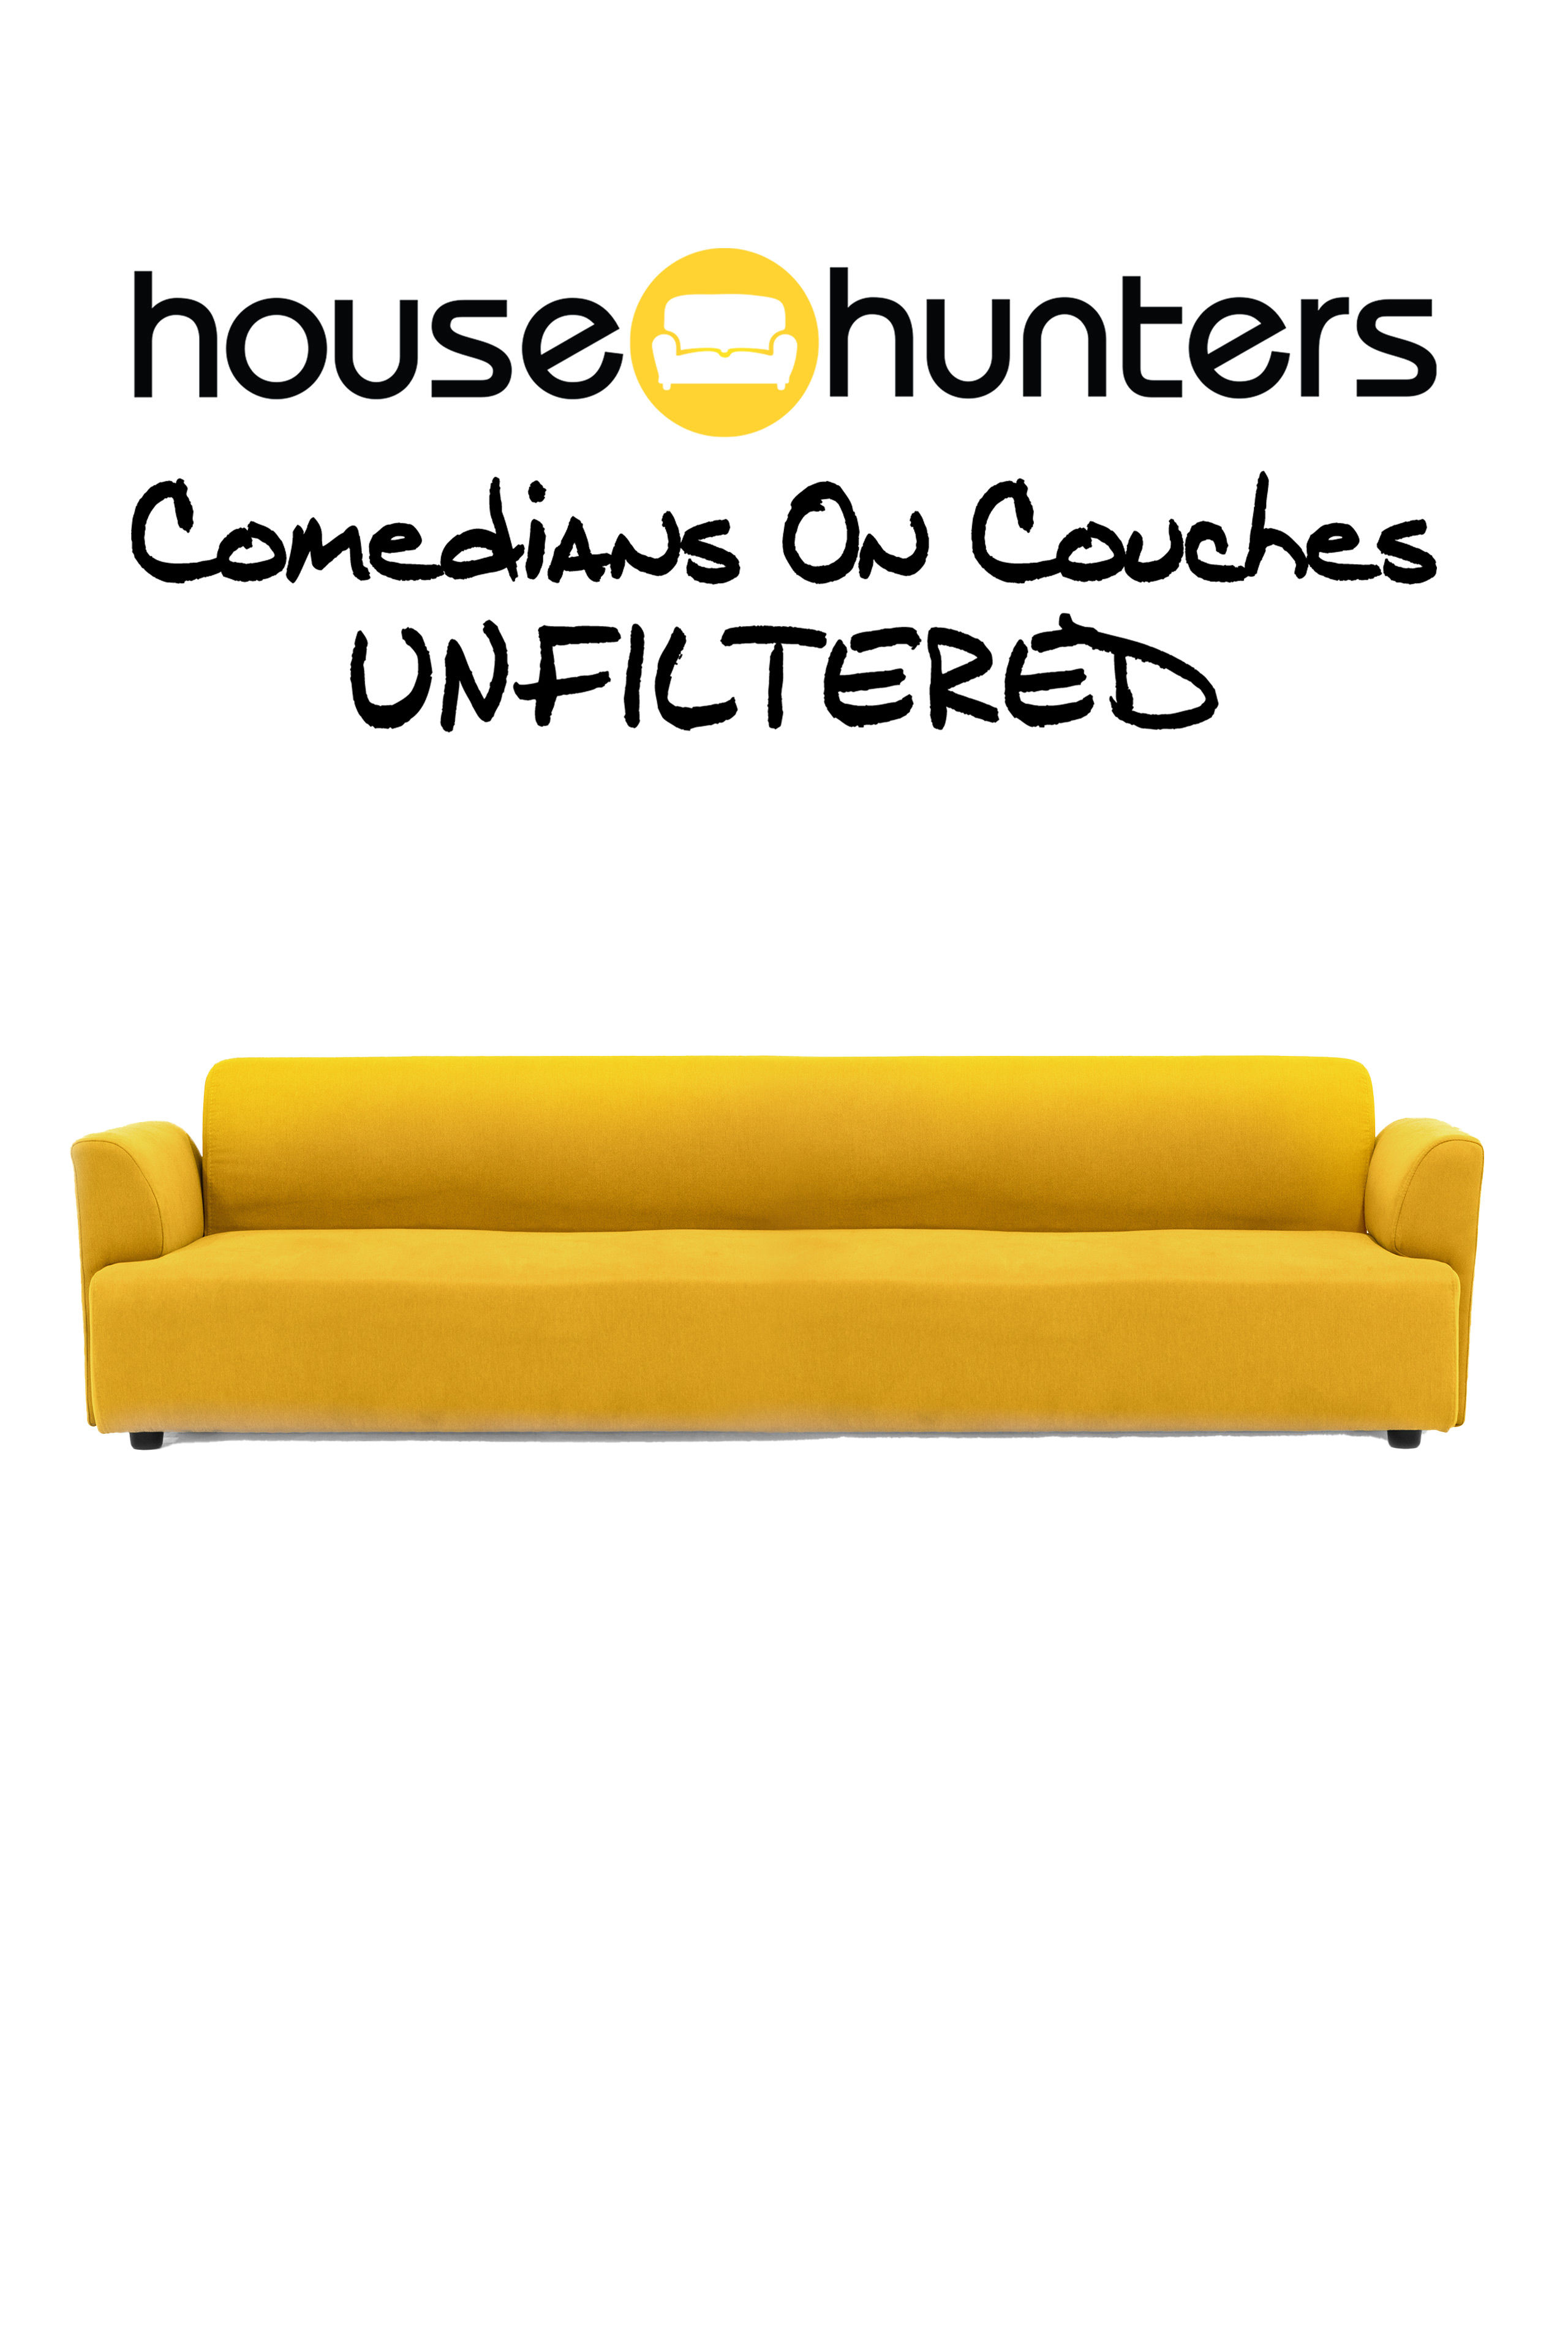 House Hunters: Comedians on Couches Unfiltered ne zaman